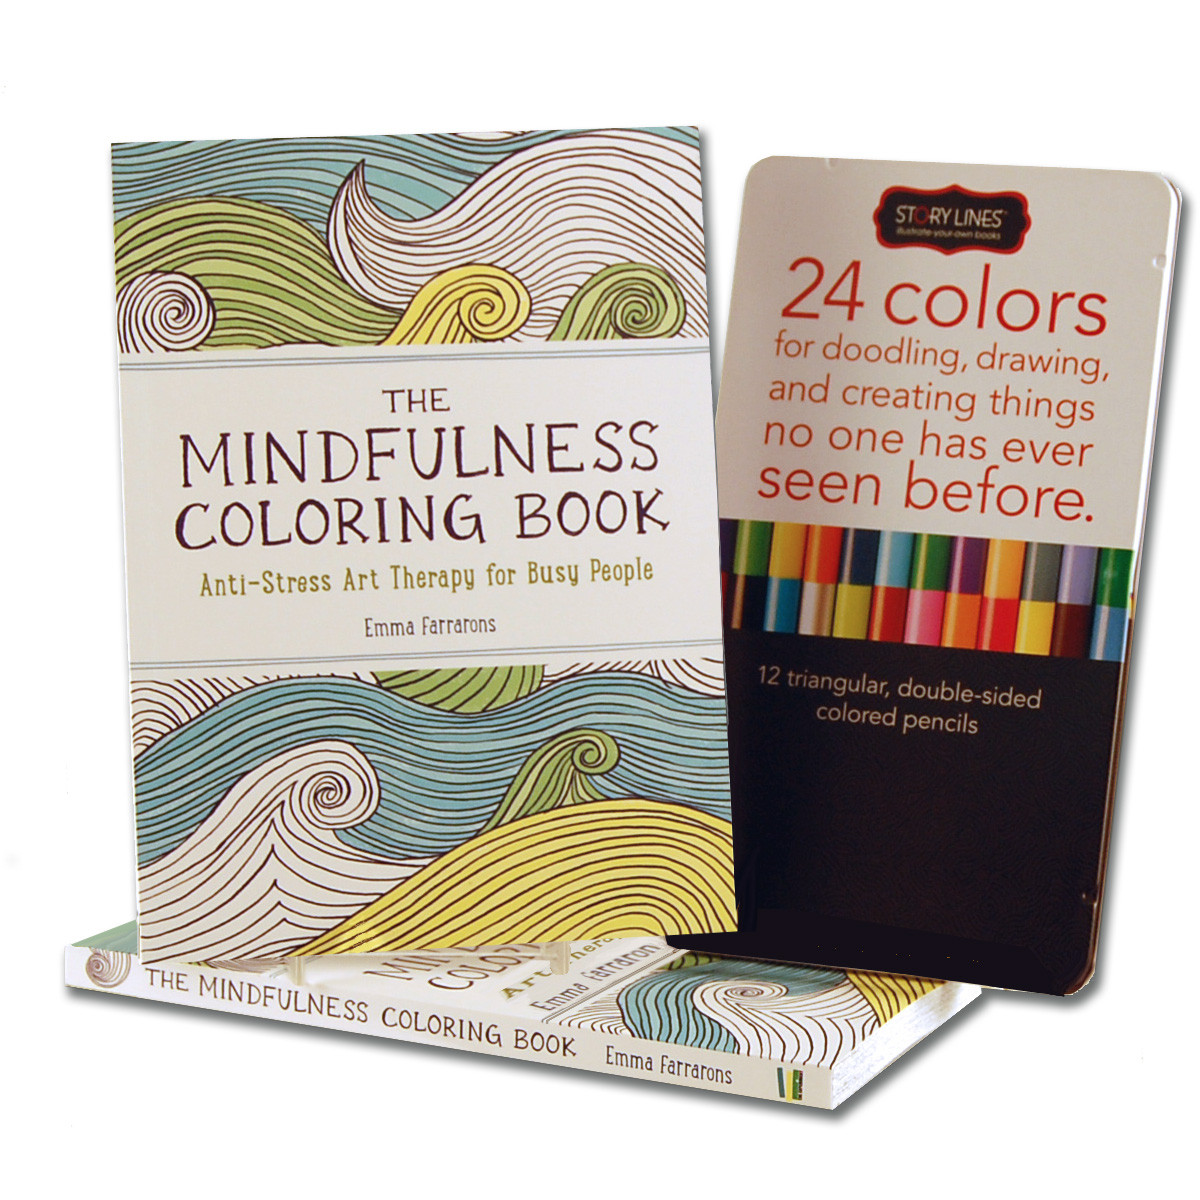 Personalized coloring book for adults with 70 unique patterns and customizable book cover imprint and first page